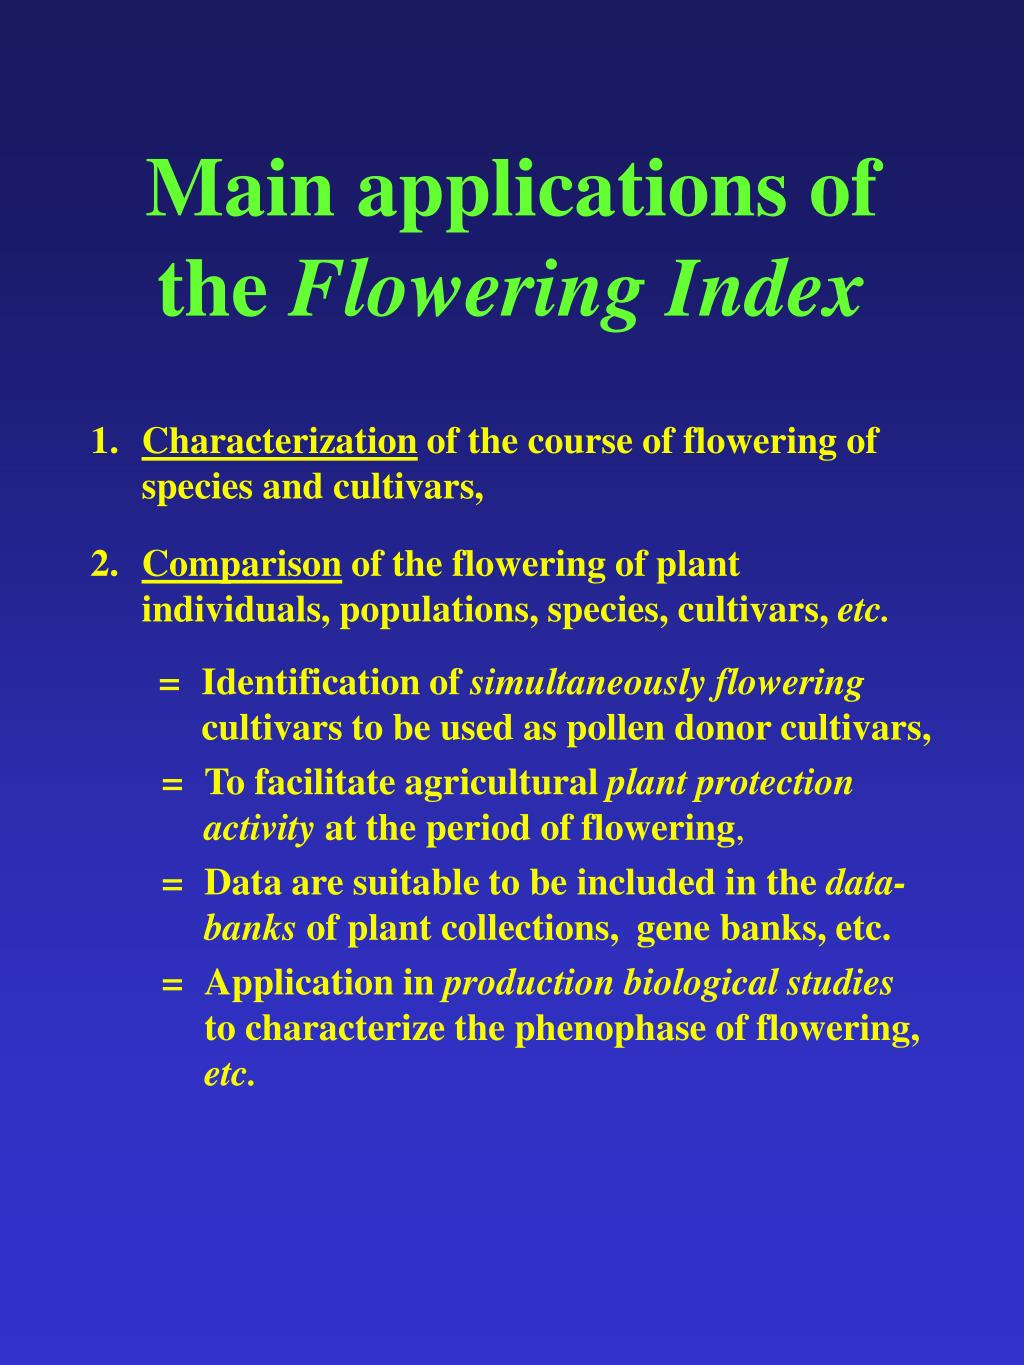 Main applications of the